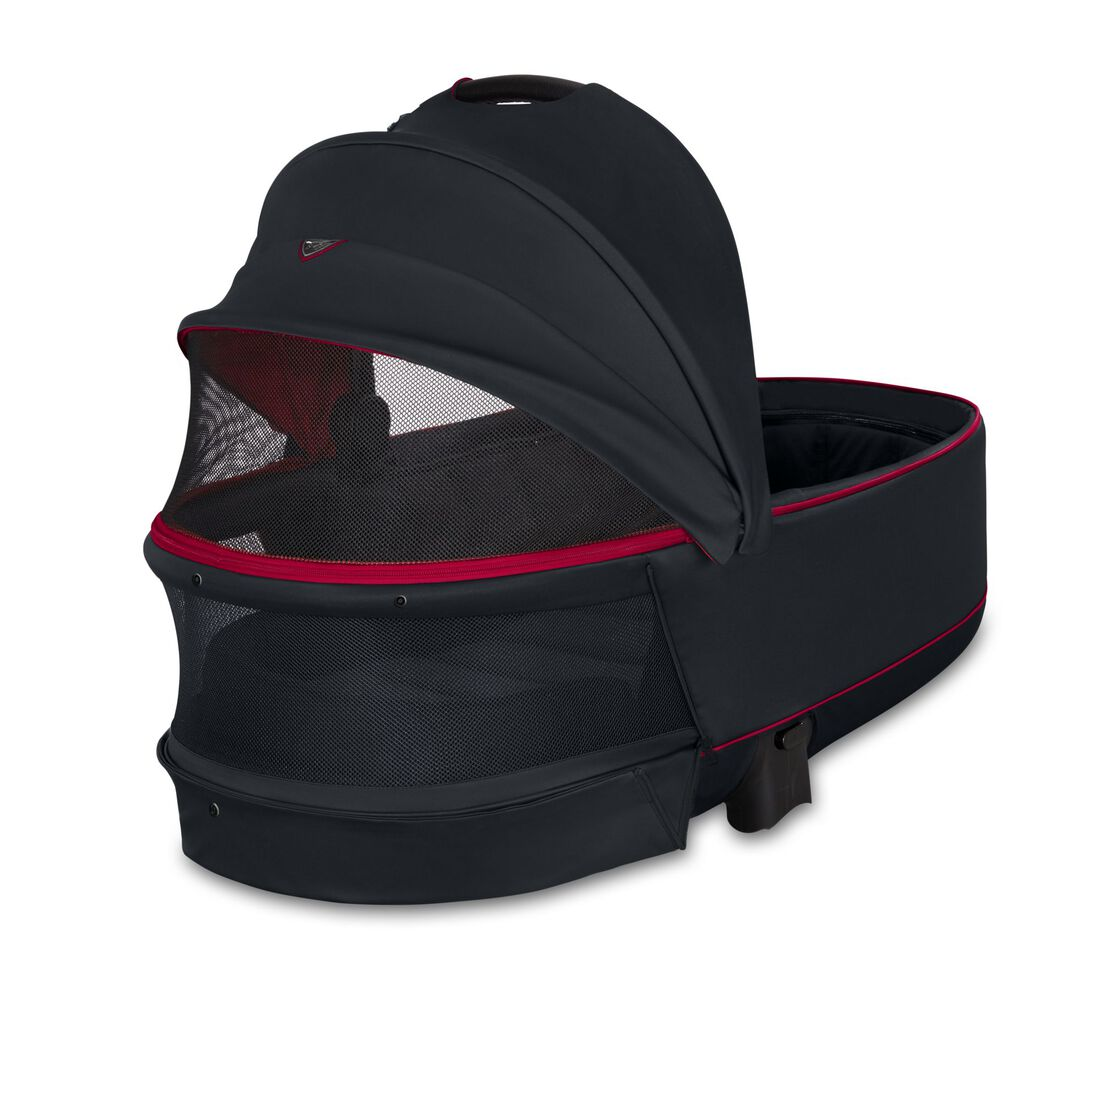 CYBEX Priam Lux Carry Cot - Ferrari Victory Black in Ferrari Victory Black large image number 3